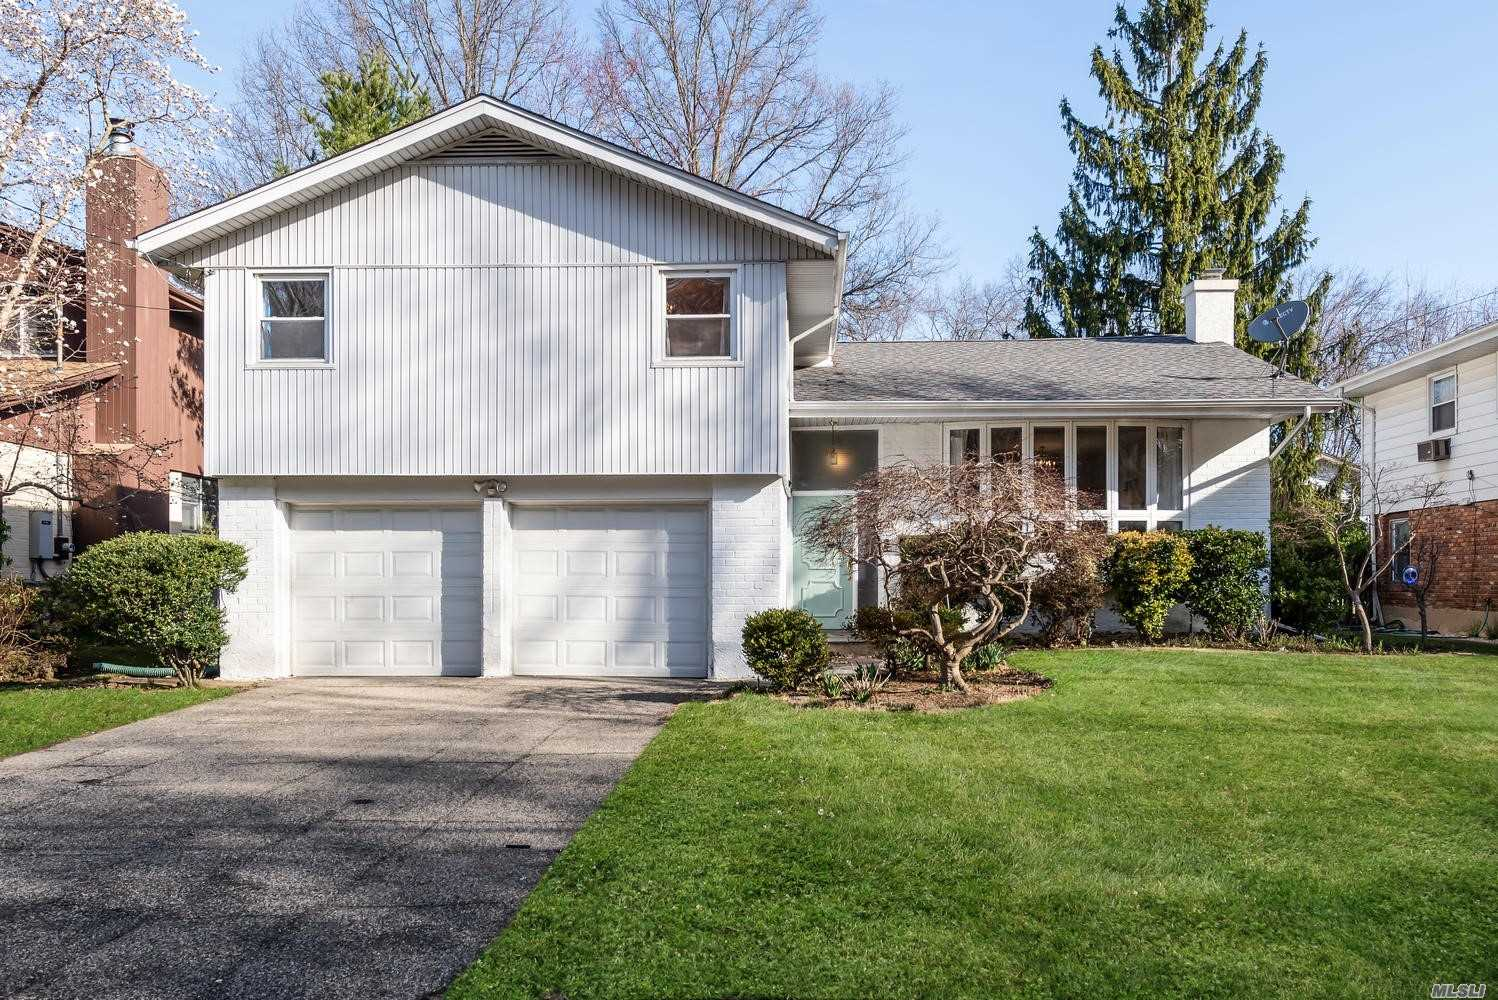 Sunny, spacious and well maintained Harbor Hills multi level home. 1st floor features living room with vaulted ceilings, updated eat in kitchen with stainless steel appliances, formal dining room and a large family room extension with fireplace. Hardwood floors thru out. Convenient to town and LIRR